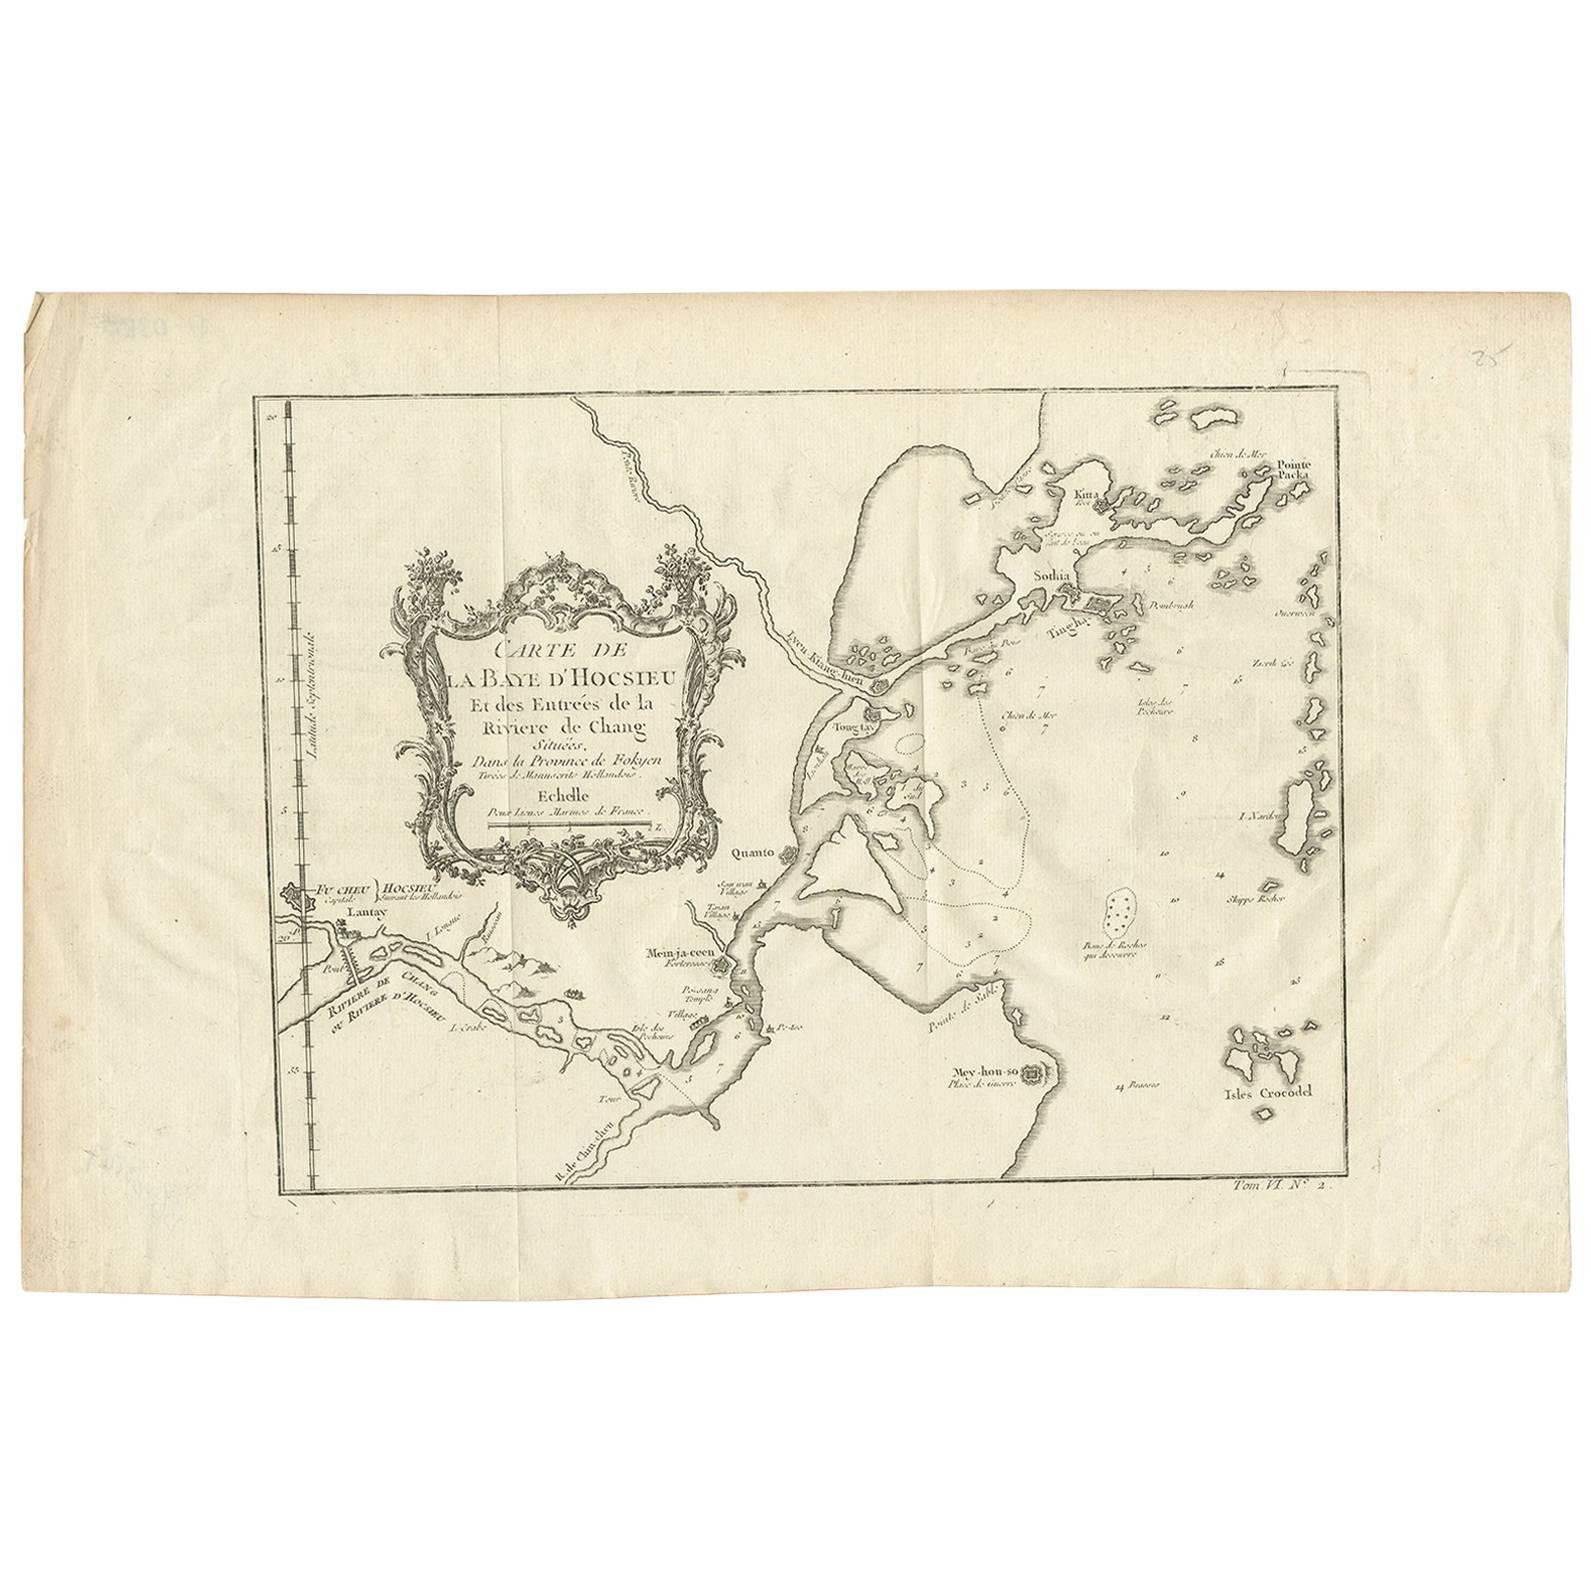 Antique Map of the Mouth of the Yangtze River 'China' by J.N. Bellin, 1764